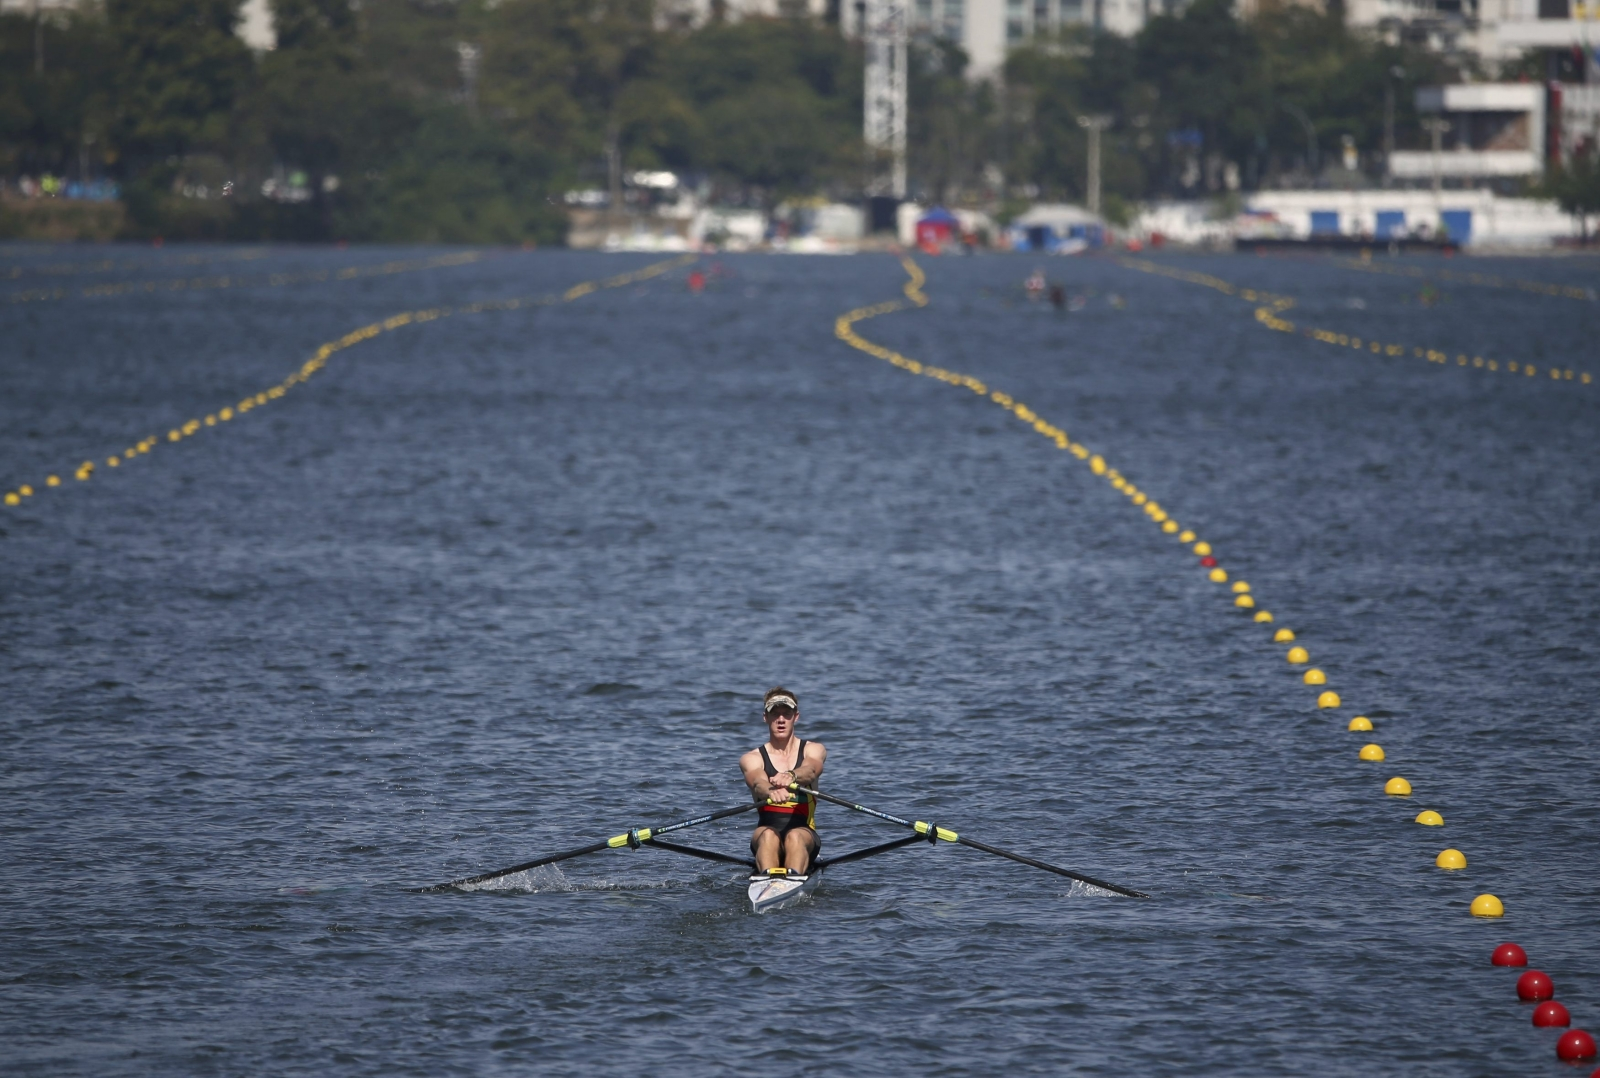 Olympic rowing